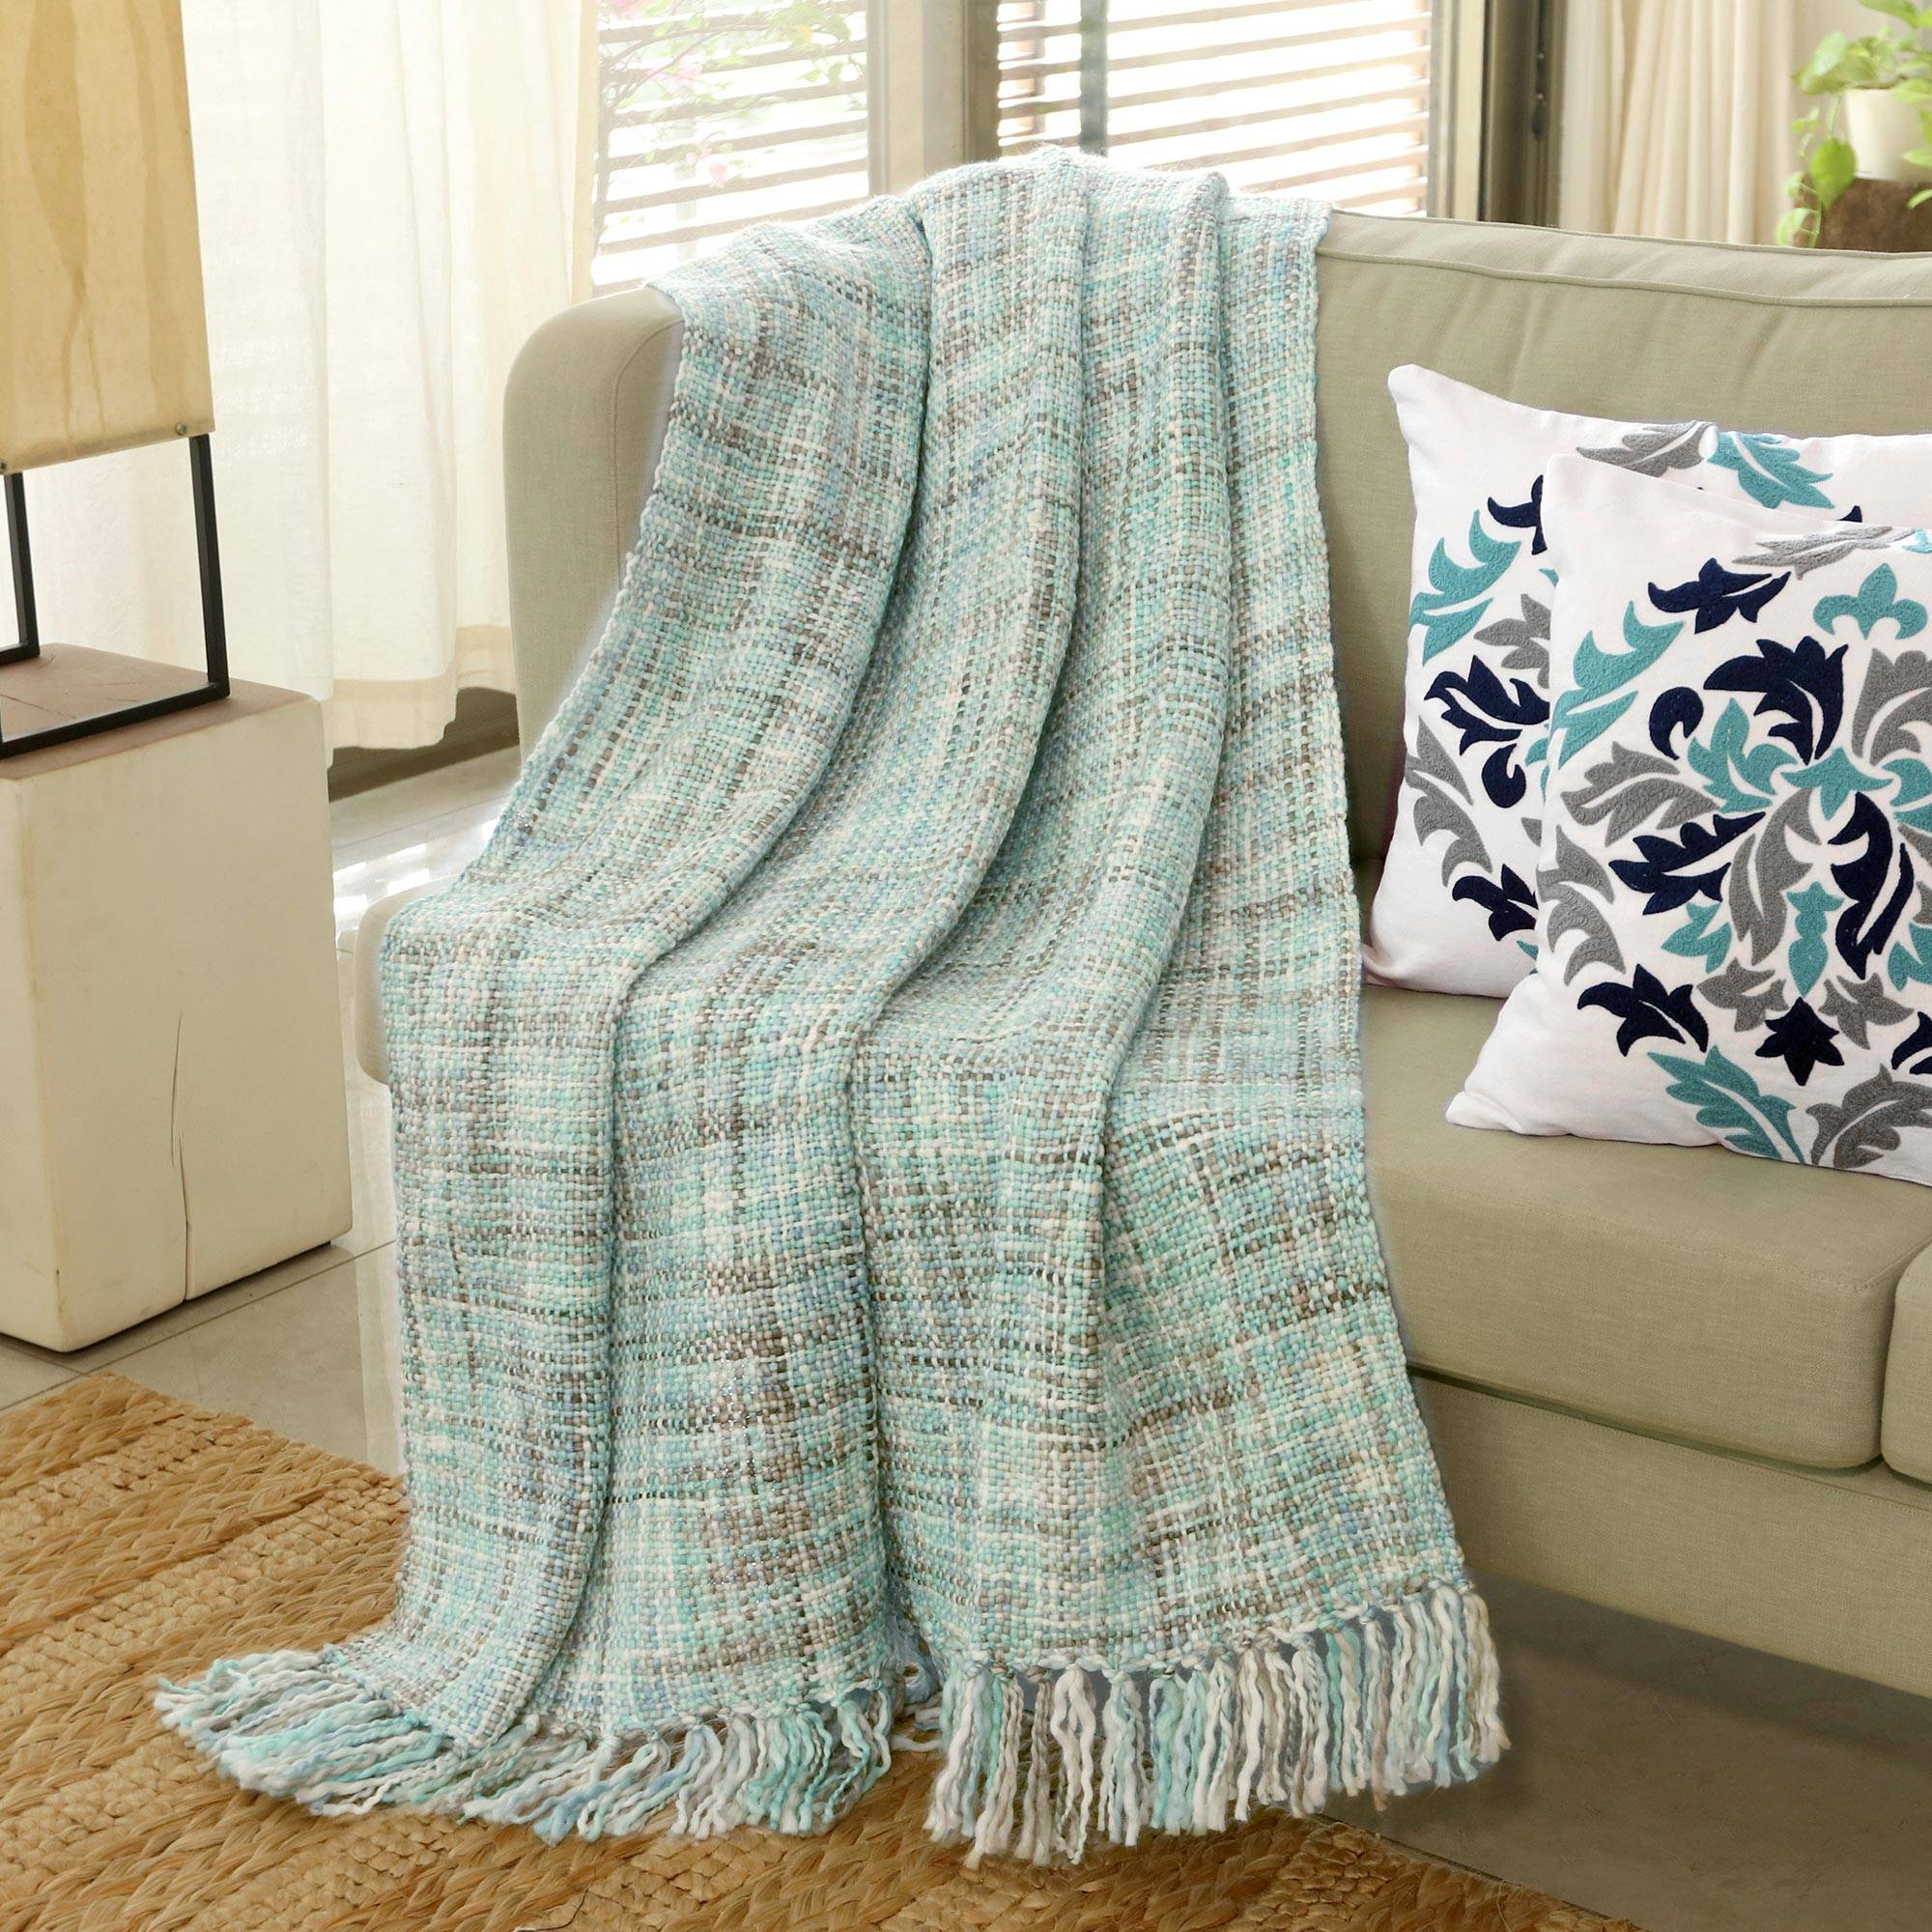 Pastel Green Throw Blanket With Fringes From India Mint Beauty